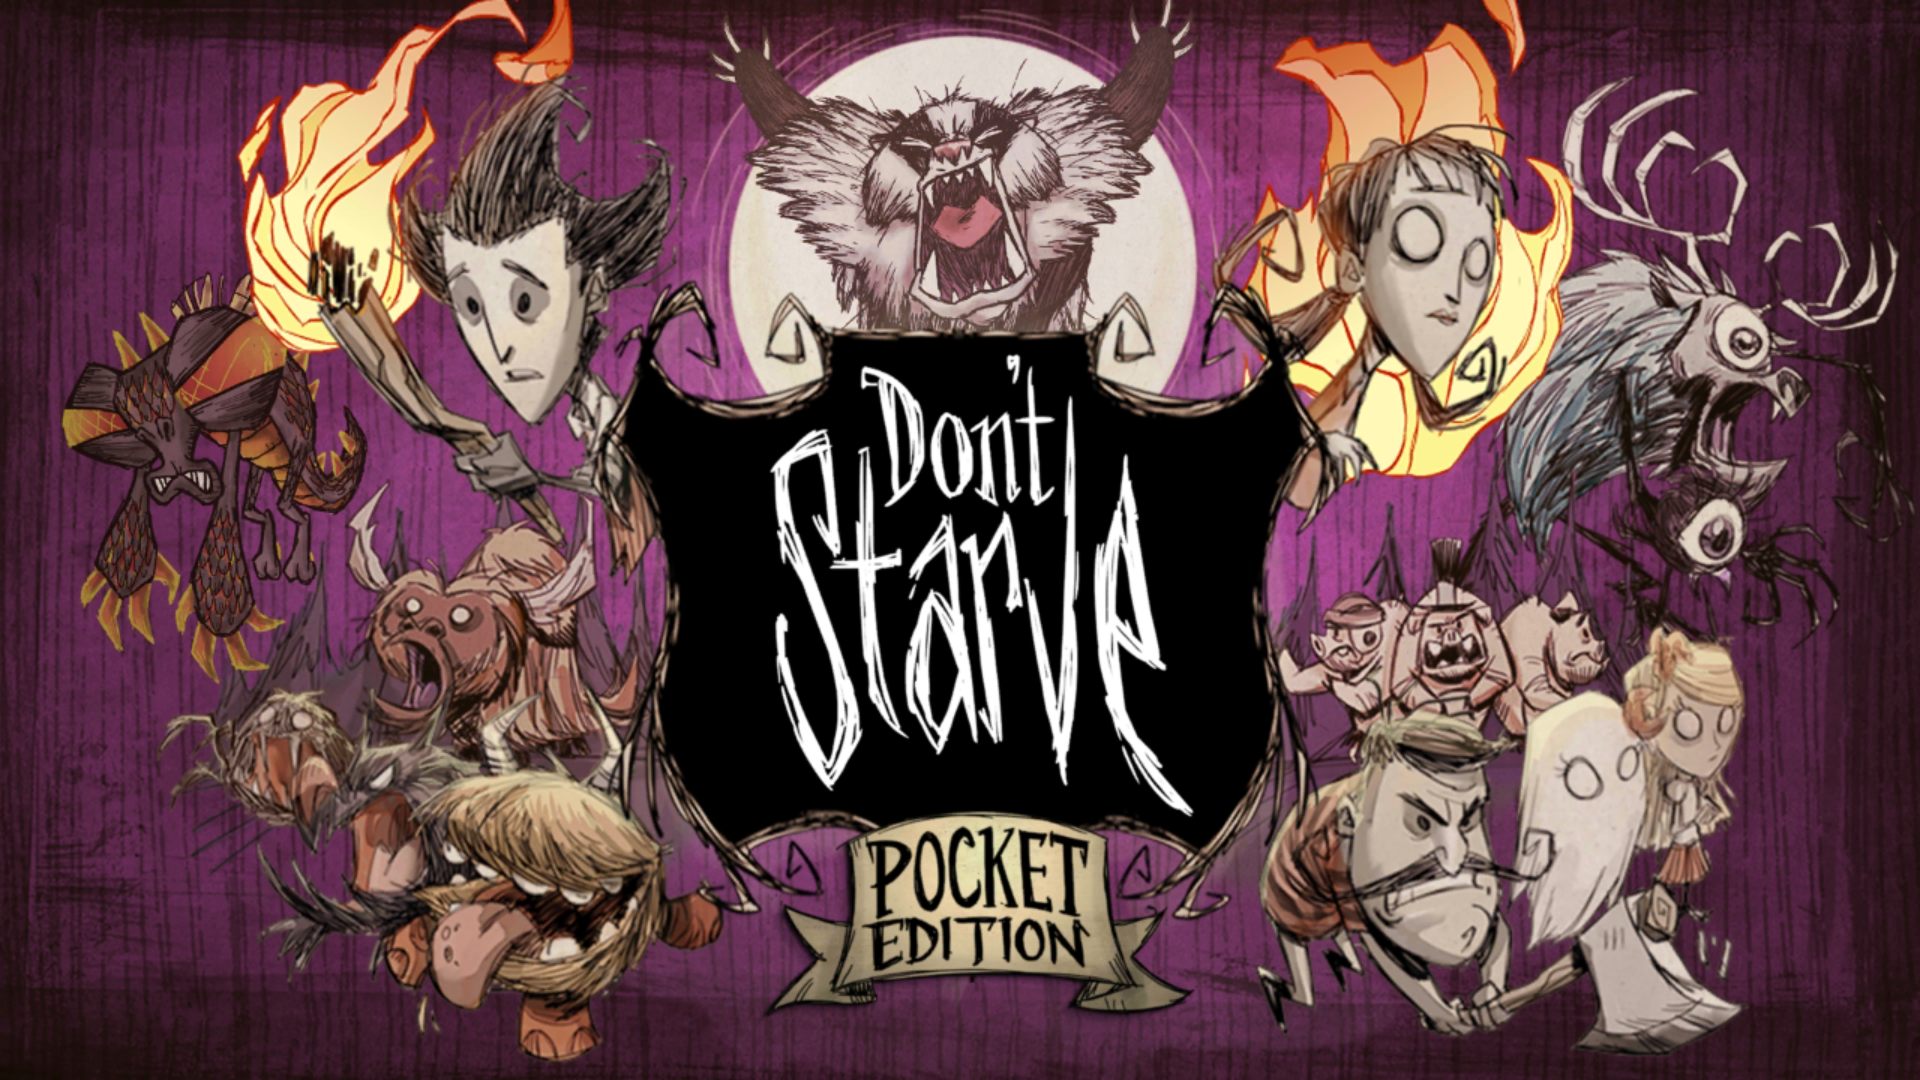 Don't Starve Pocket Edition – Un ottimo porting di un vero survival-sandbox